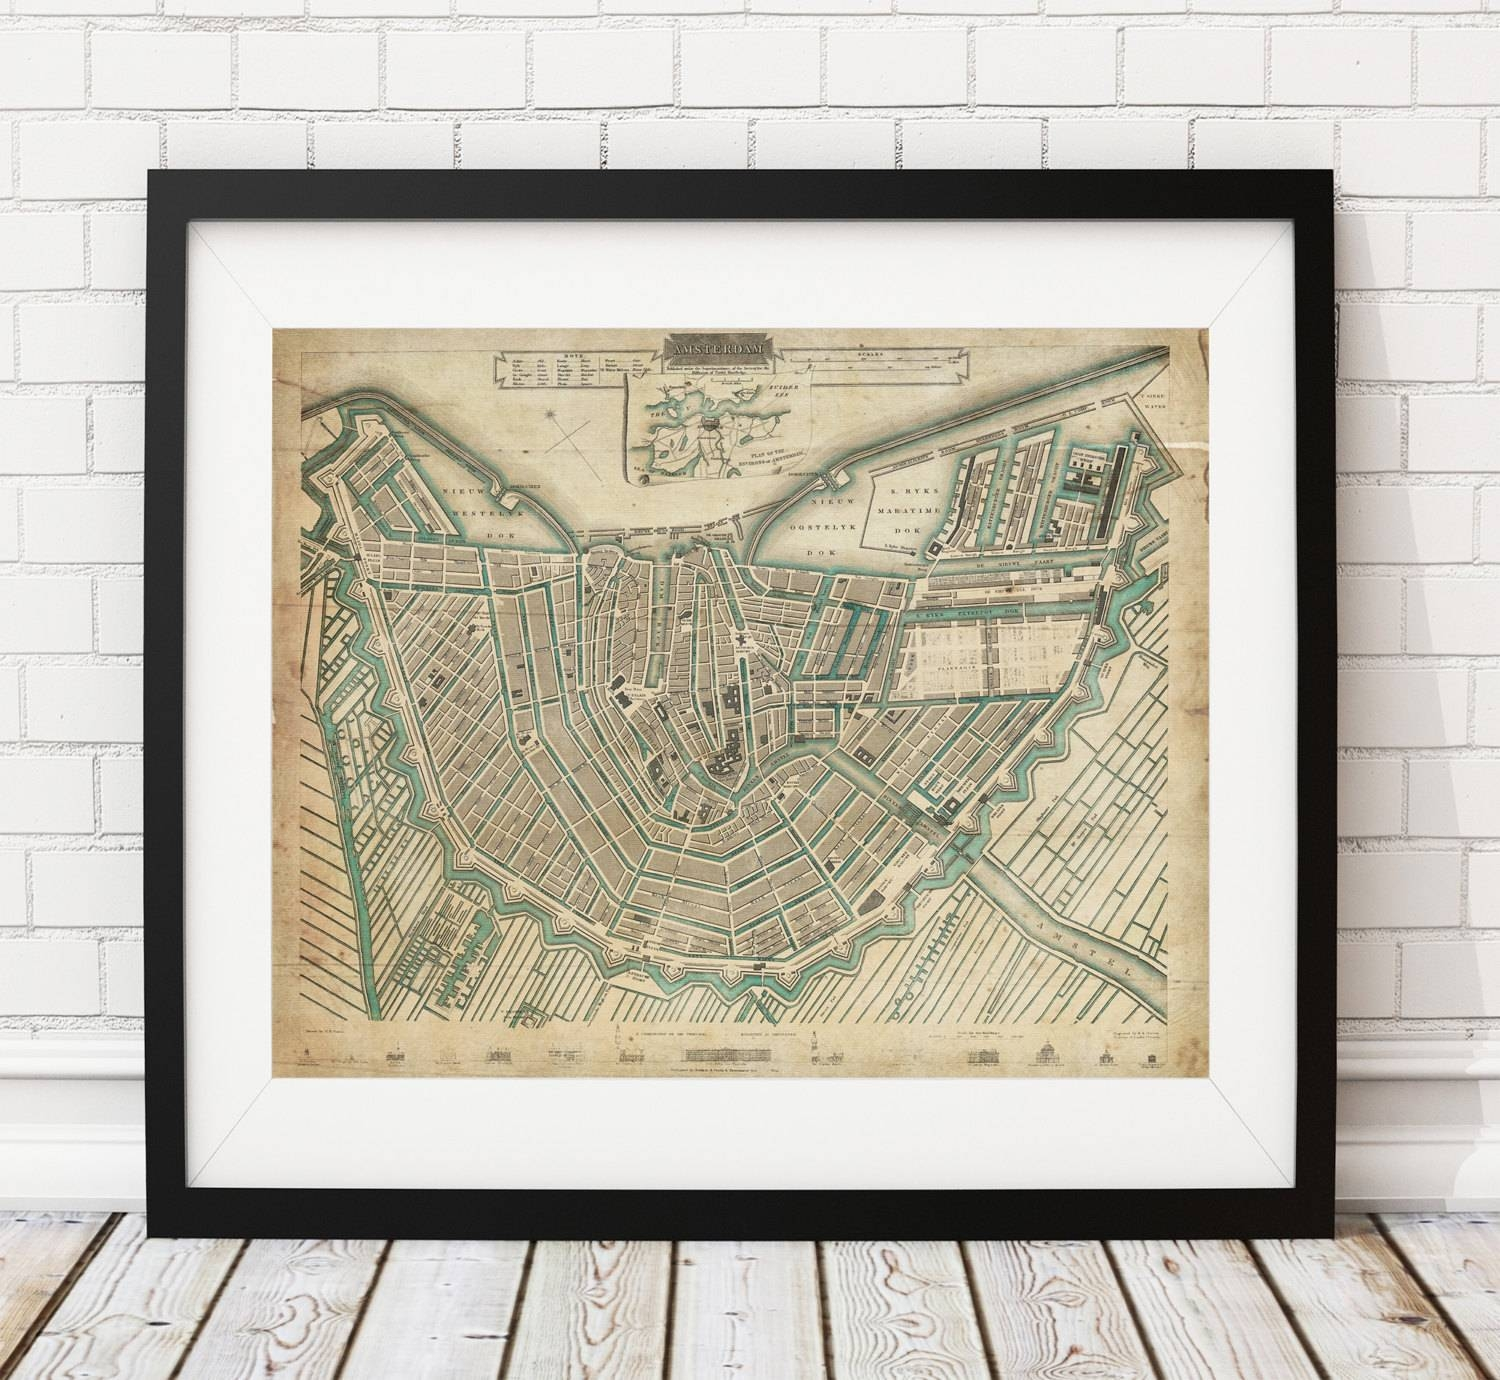 Amsterdam Map Print, Vintage Map Art, Antique Map, Wall Art Pertaining To Most Popular Vintage Map Wall Art (View 2 of 20)